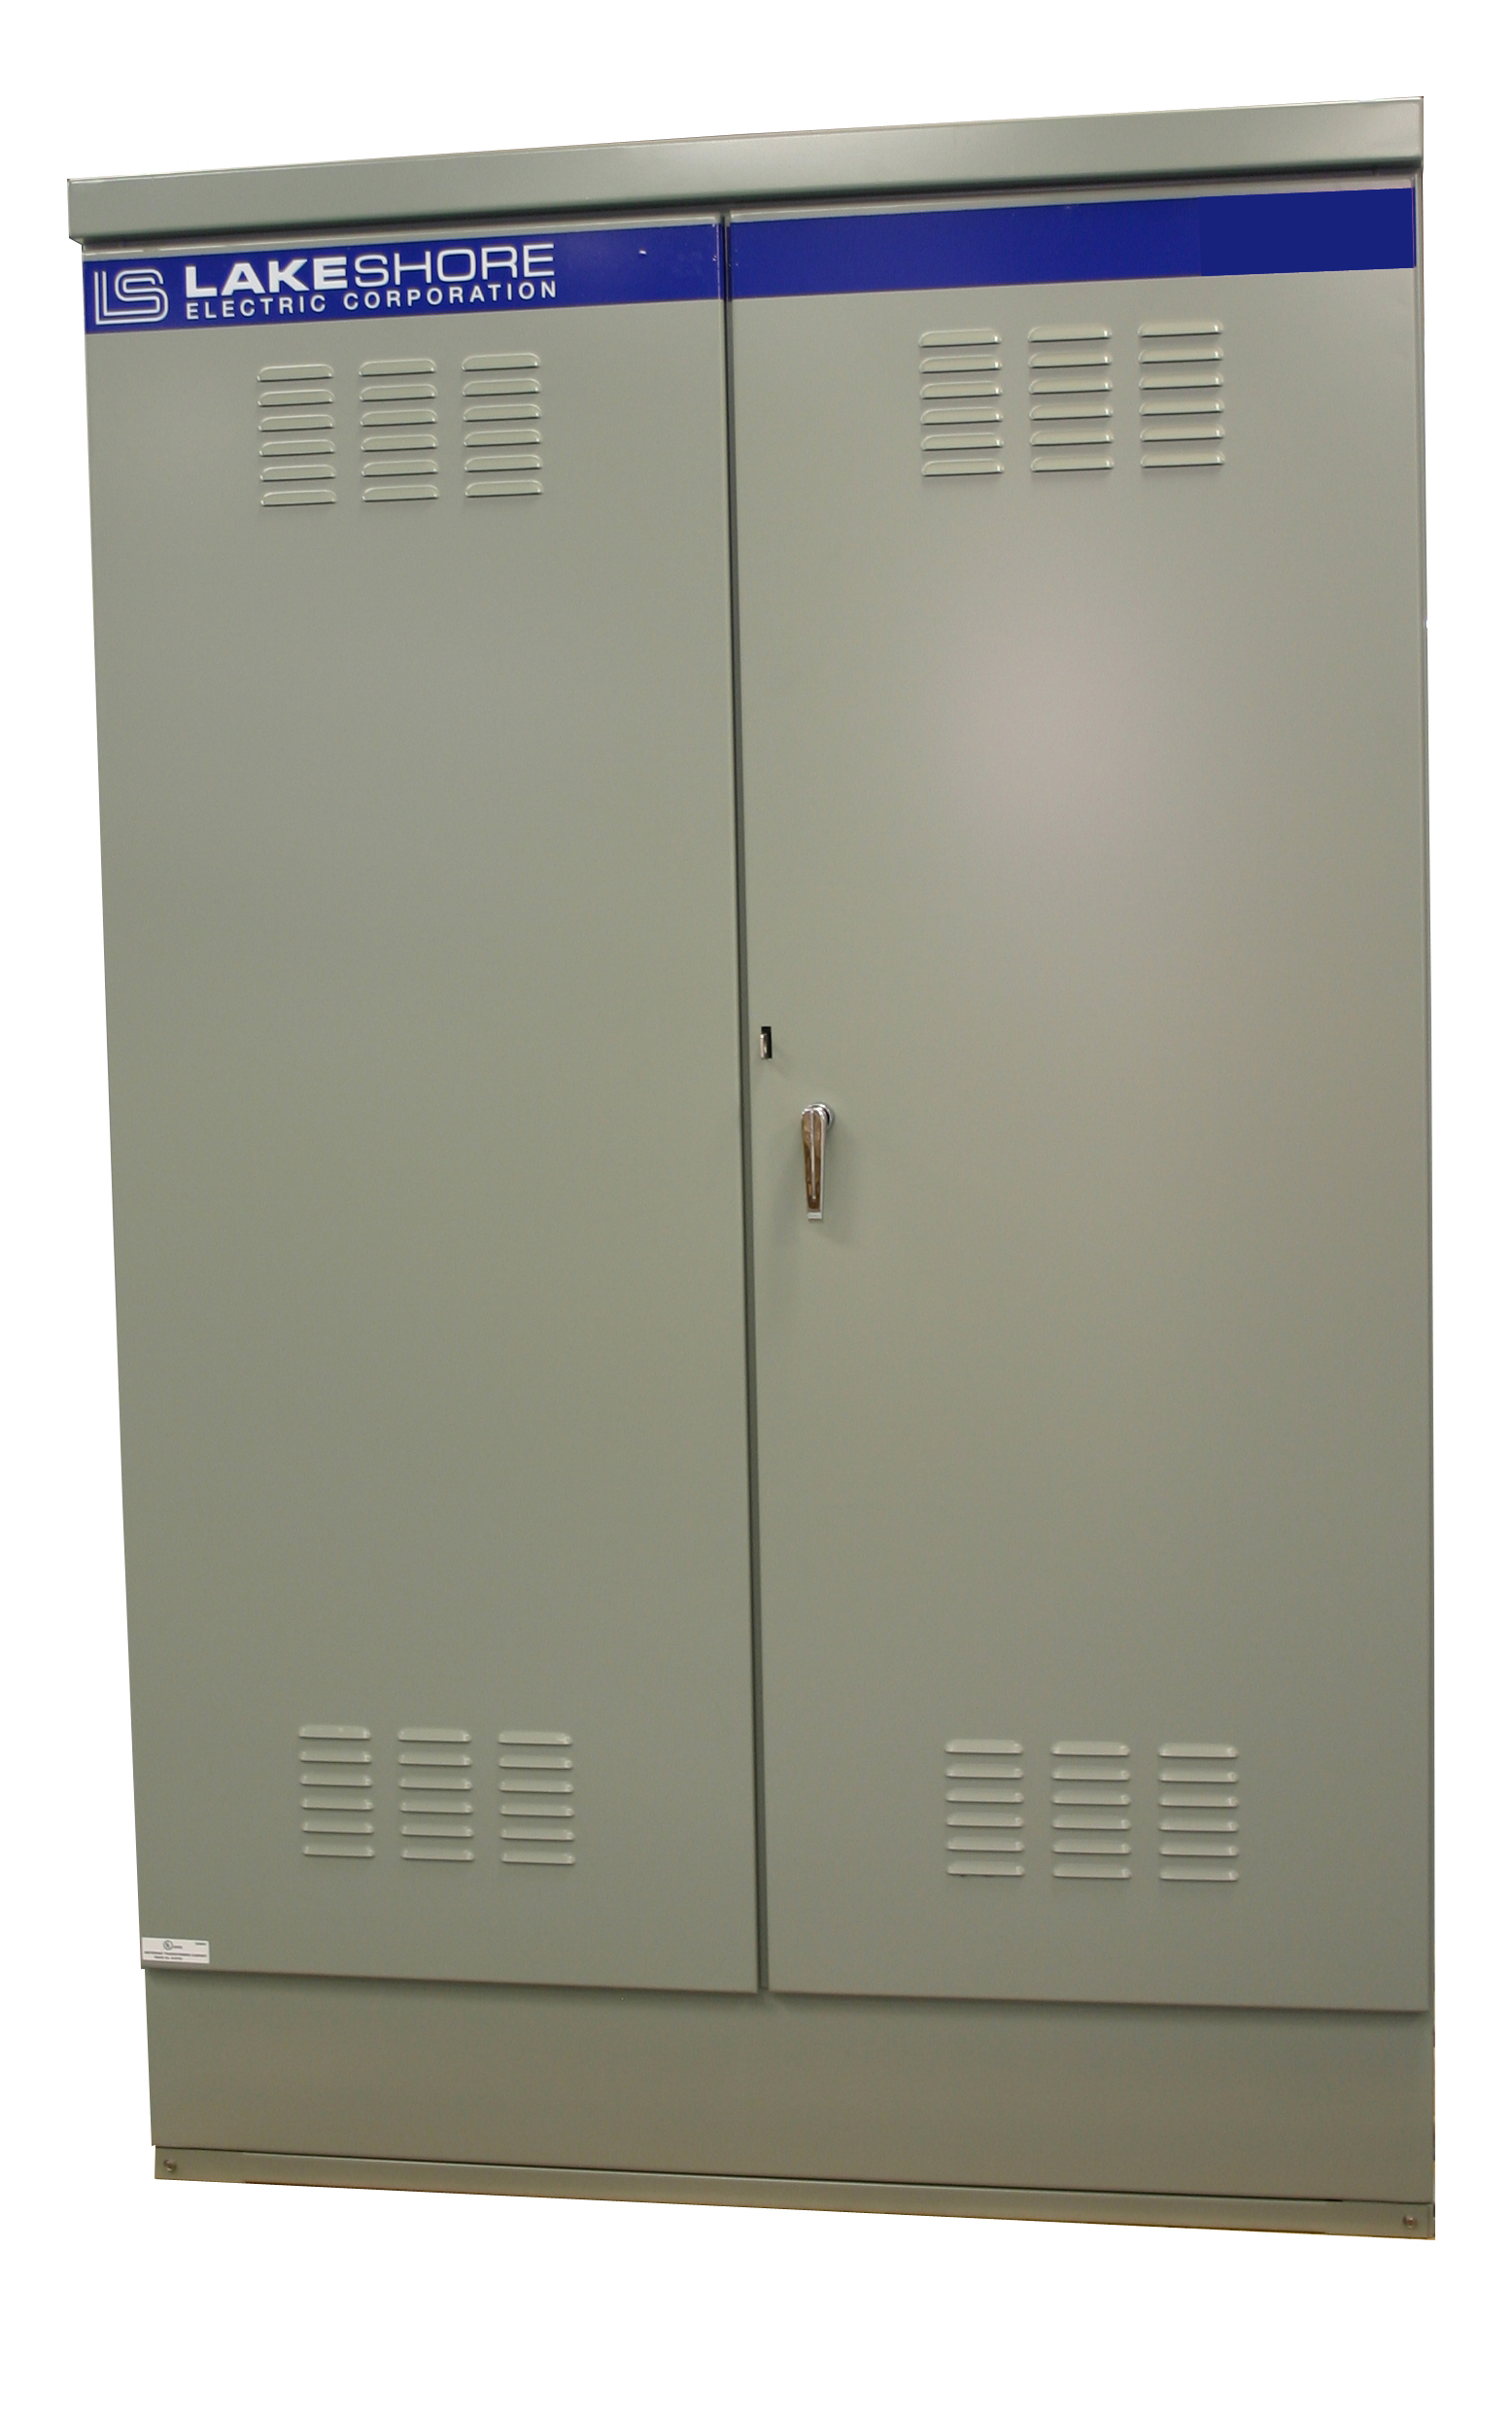 800 To 2000 Amp Ct Cabinet Manufacturer Lake Shore